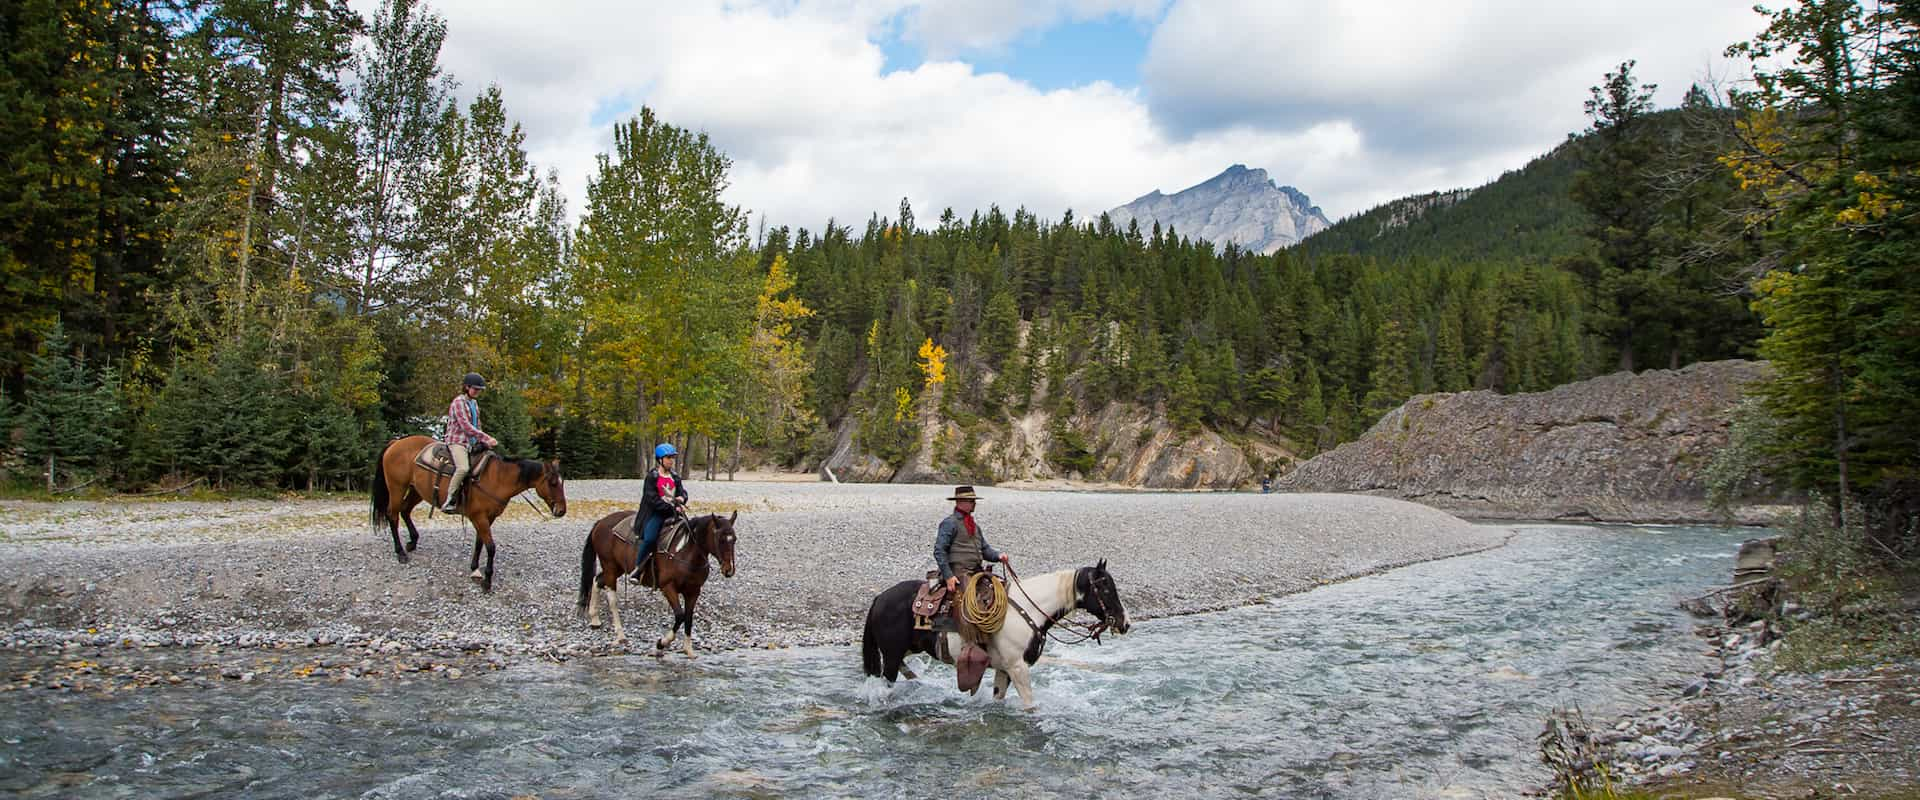 Horseback ride through the Spray River with Banff Trail Riders